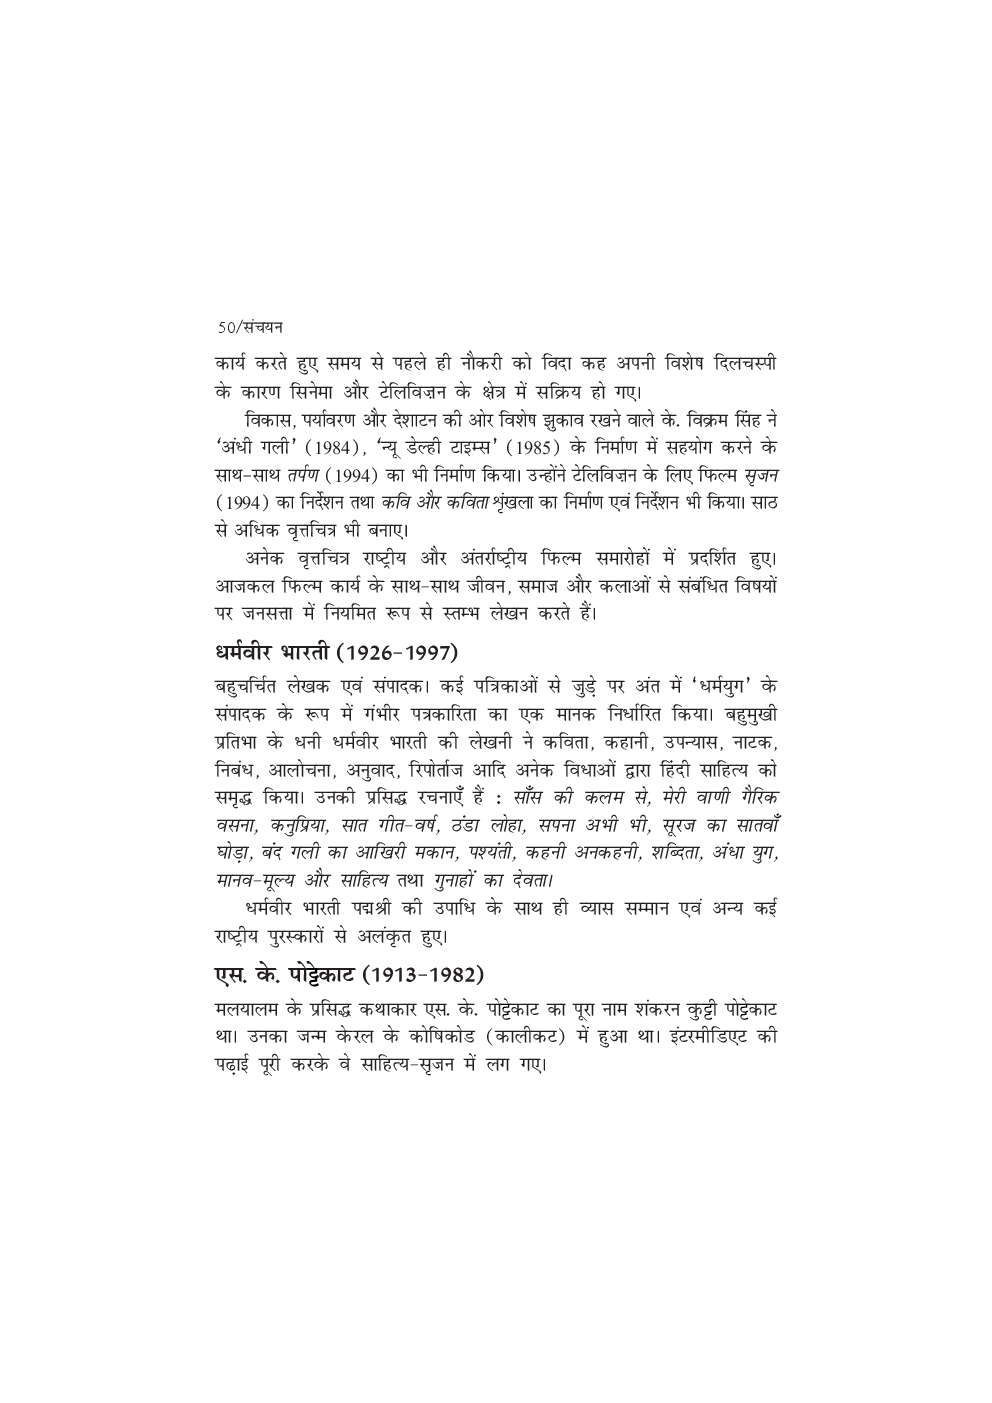 NCERT Hindi Sanchyan Textbook for Class 9th - Page 4